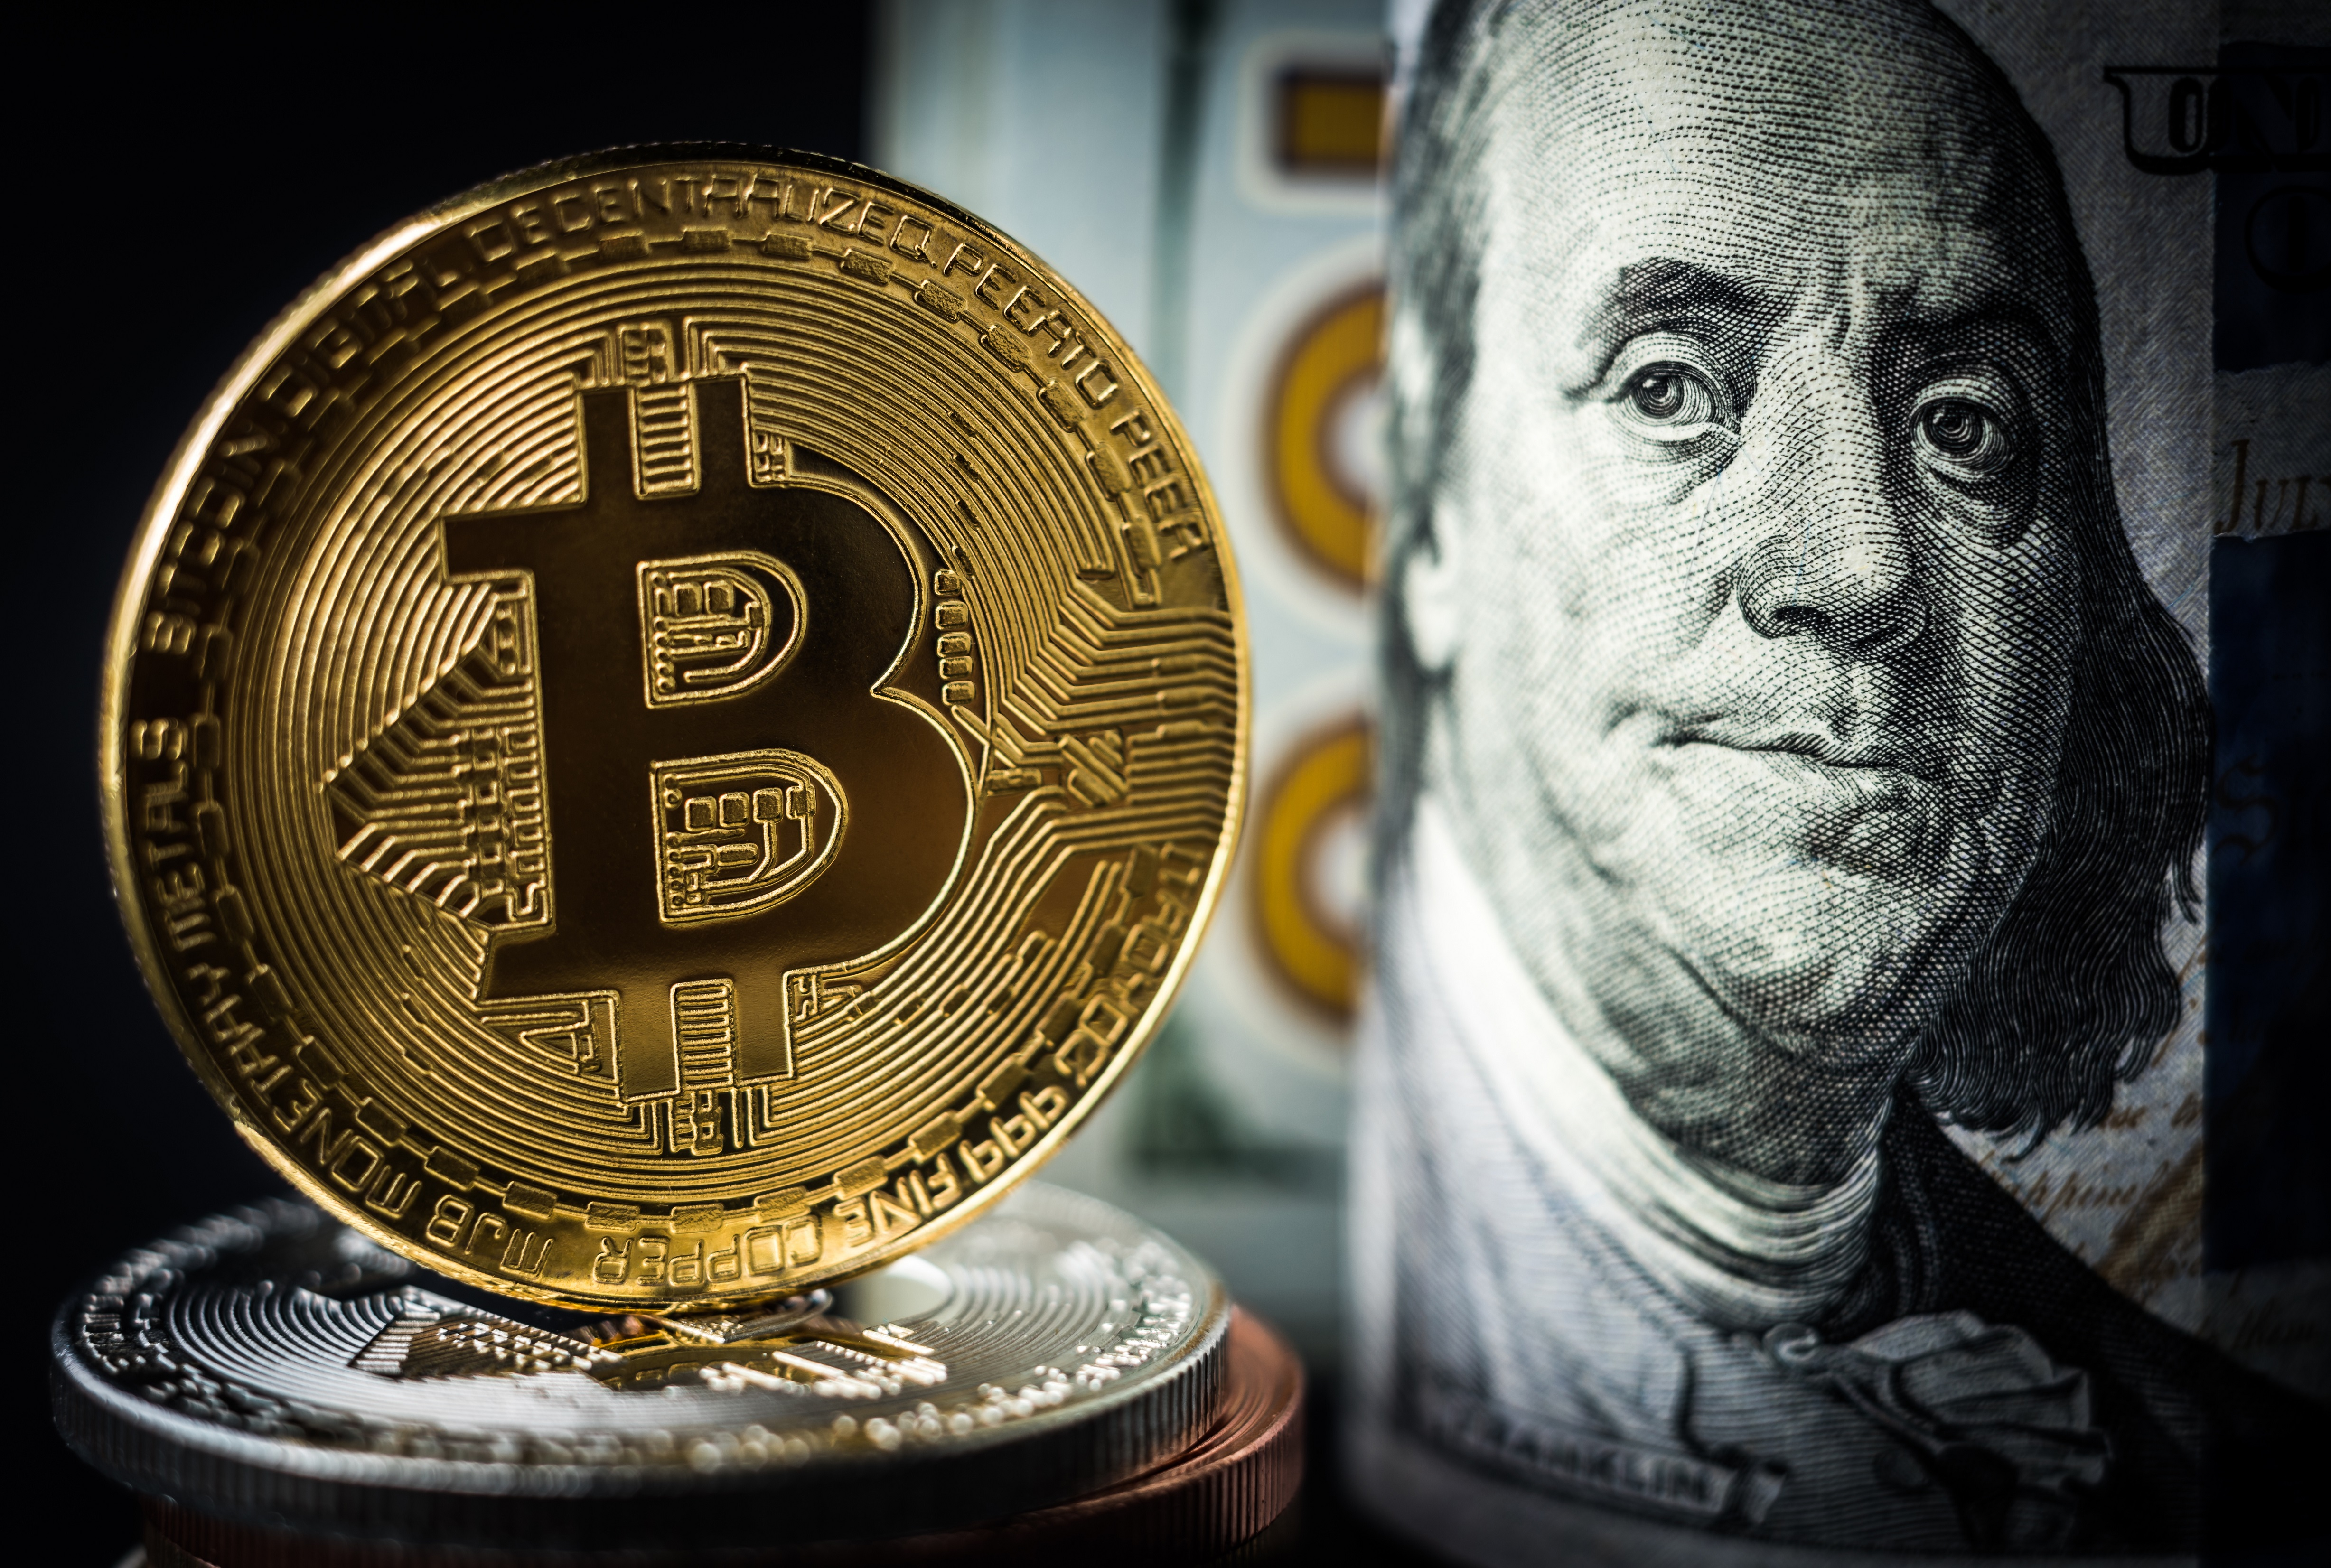 US Election & Weakening USD Will Fuel Bitcoin Price - deVere Group CEO